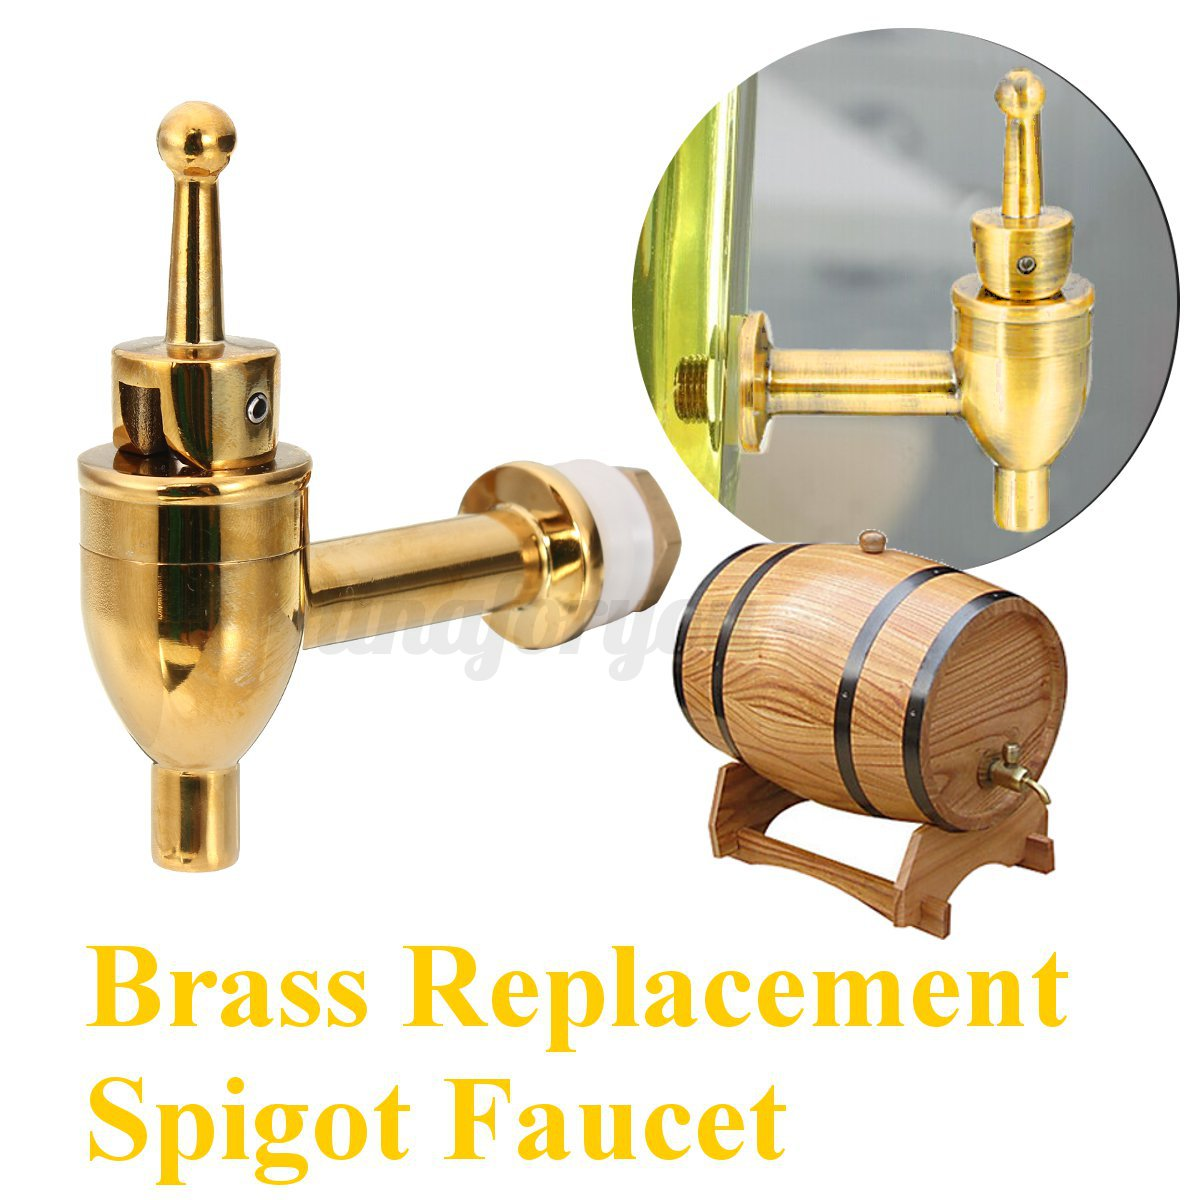 brass replacement spigot faucet for wine barrel beverage drink dispenser tap. Black Bedroom Furniture Sets. Home Design Ideas